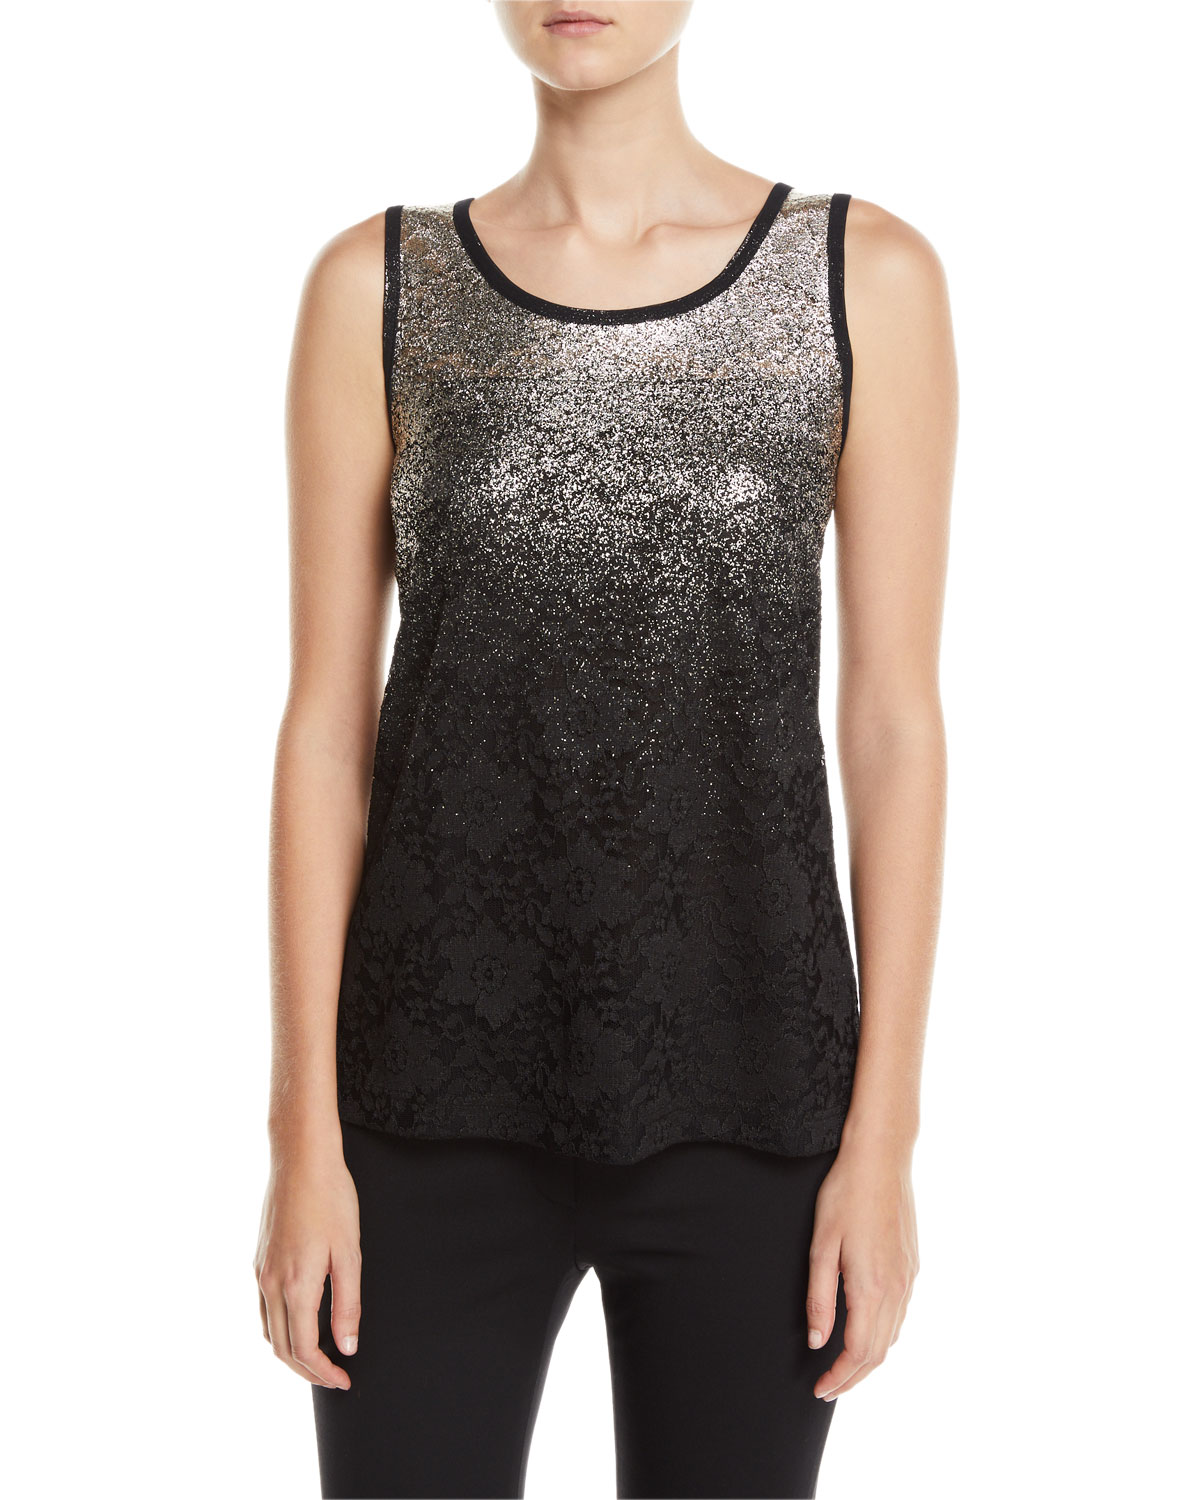 BEREK Speckle-Border Easy Tank Top With Lace in Multi